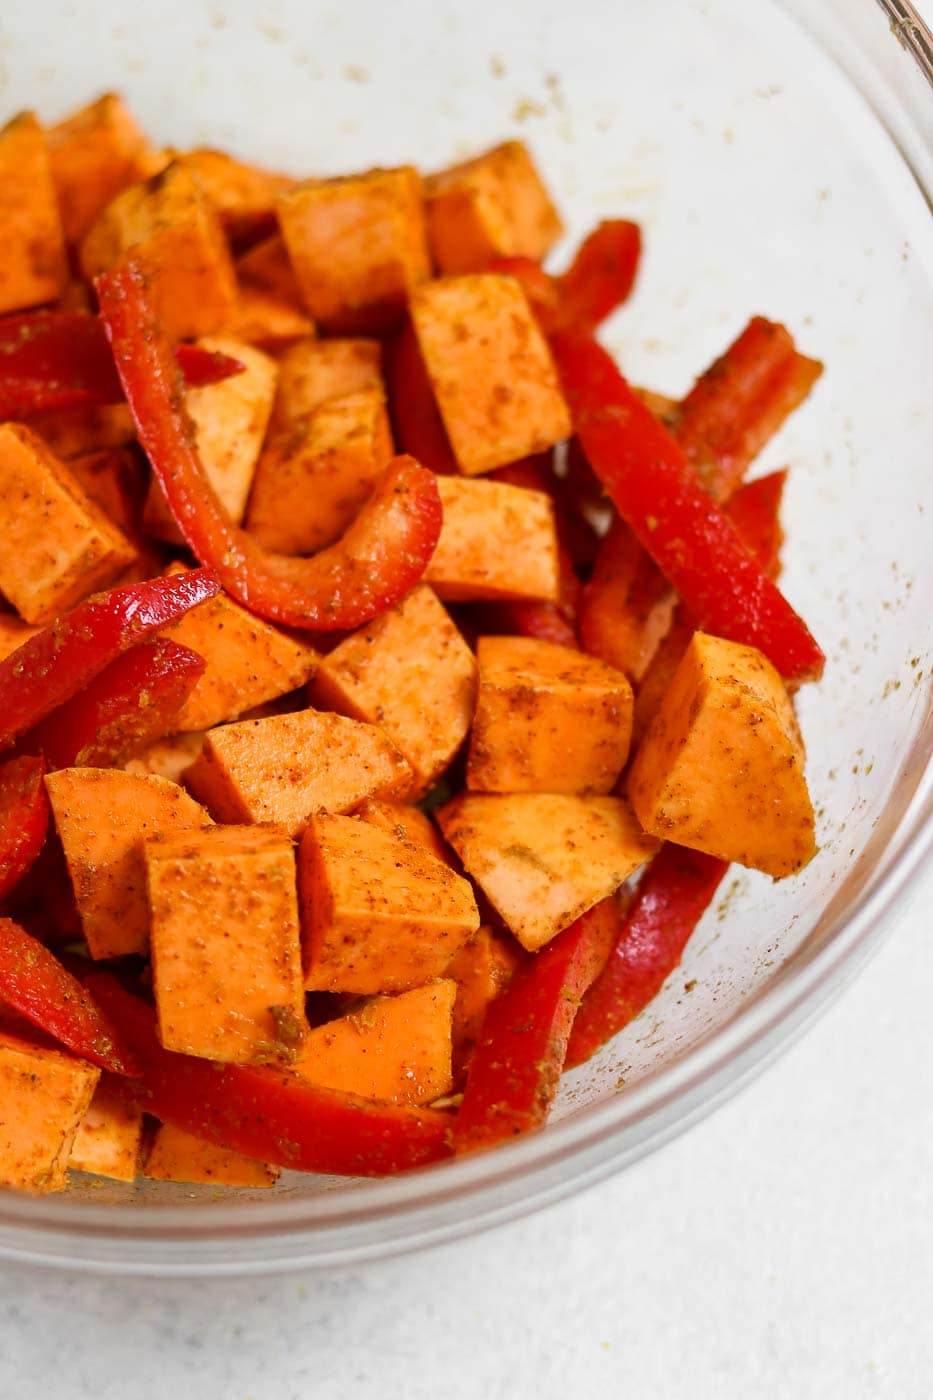 Seasoned sweet potato and peppers.